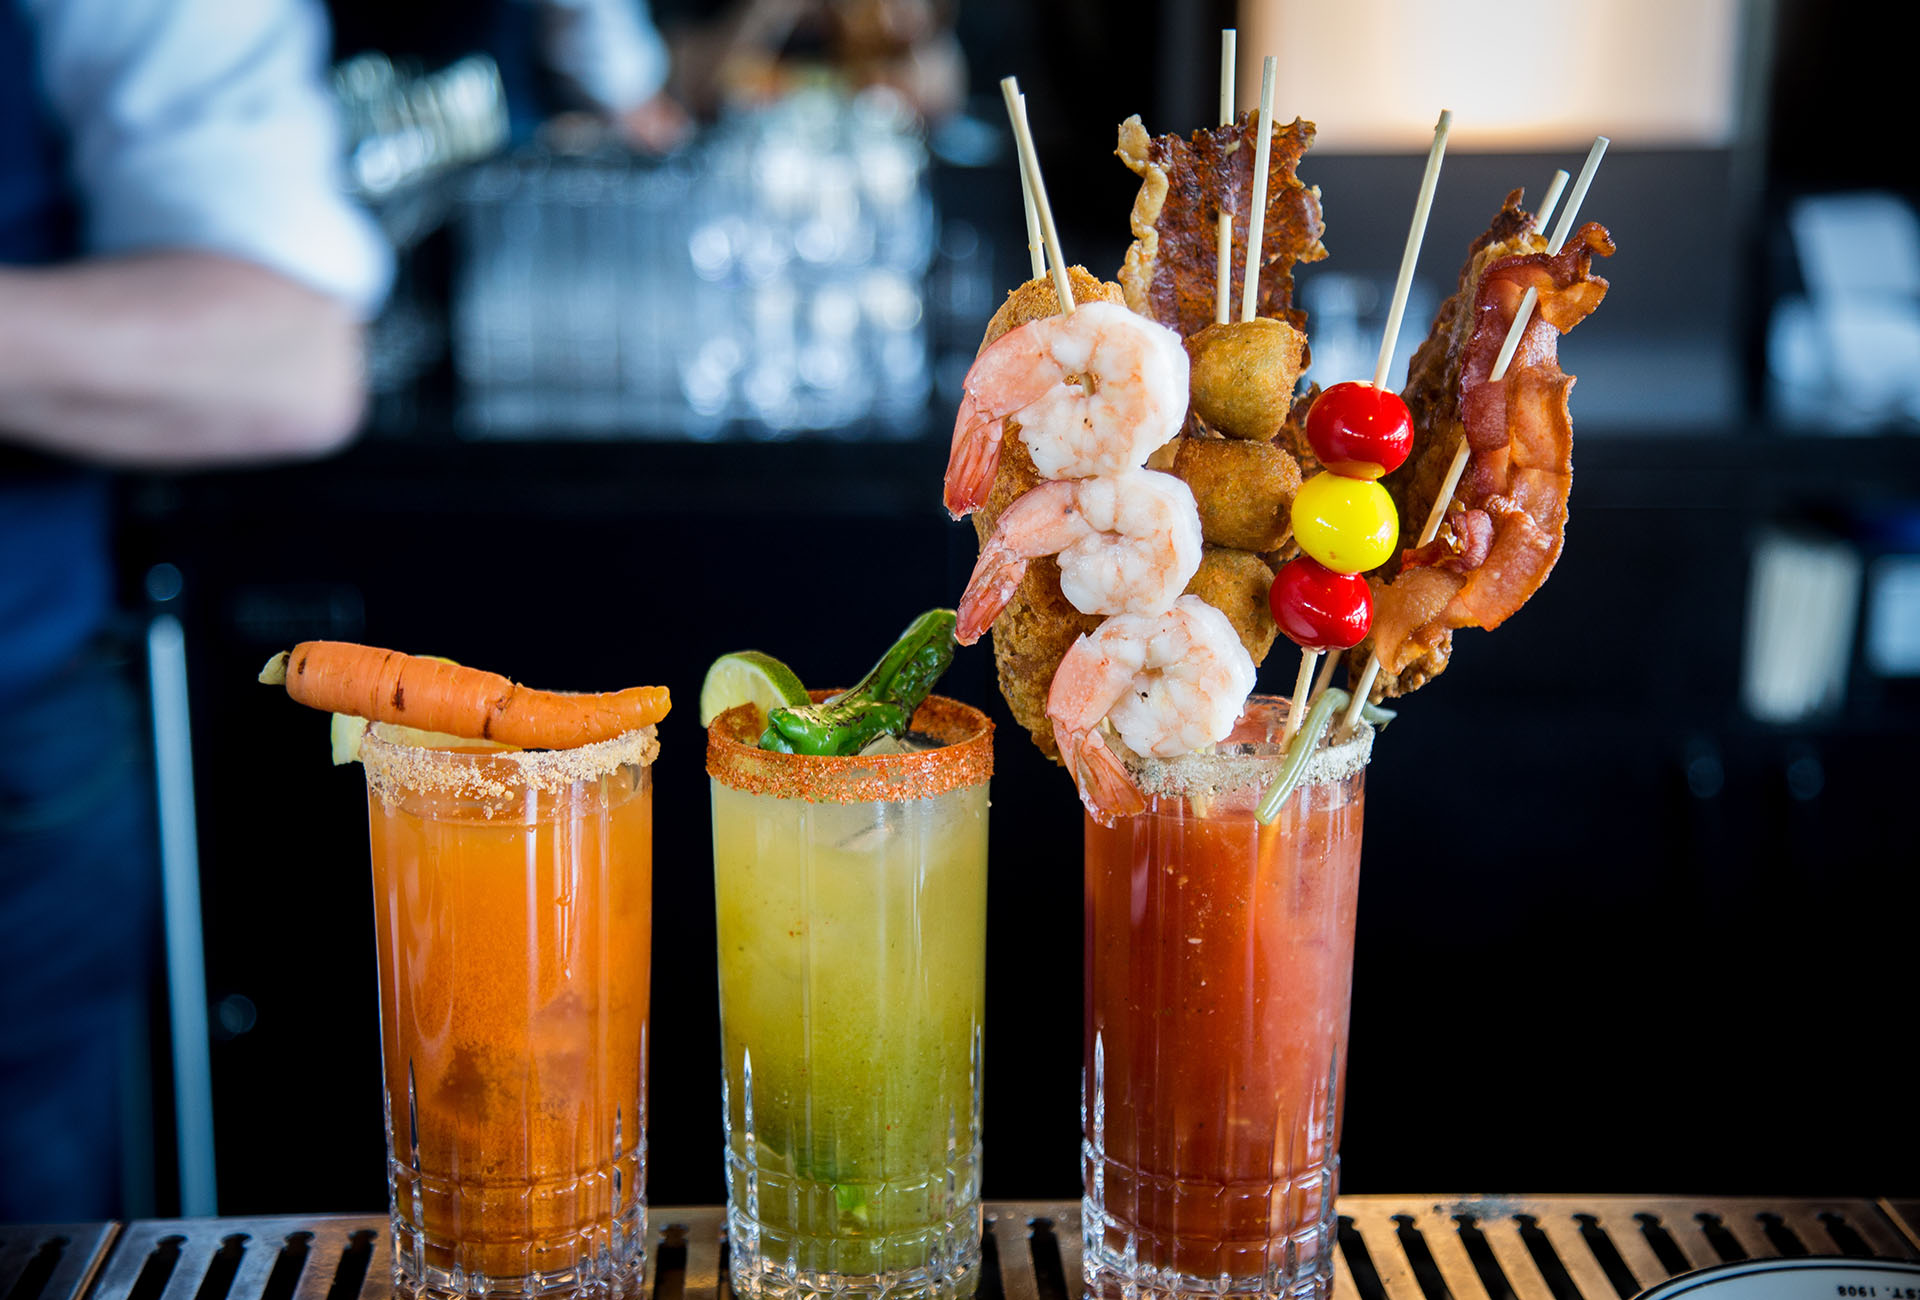 All three variations of the Bloody Mary, with a Hail Mary in the works.